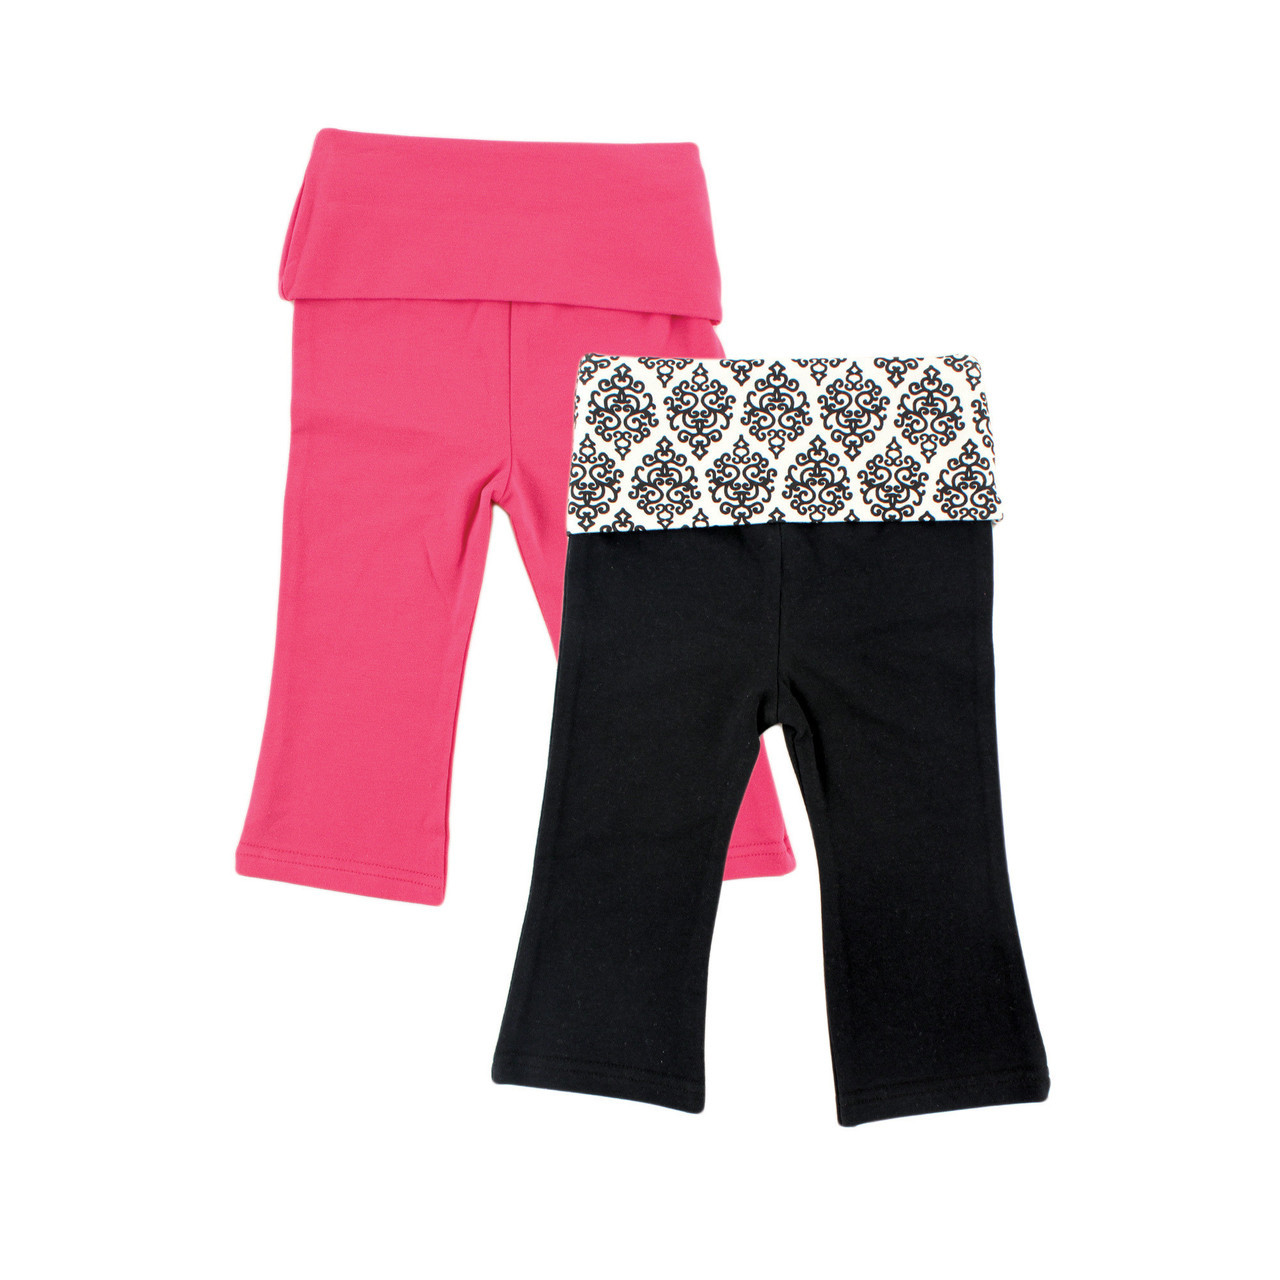 Yoga Sprout Yoga Pants 2 Pack Pink And Black Damask Baby And Toddler Clothes Accessories And Essentials